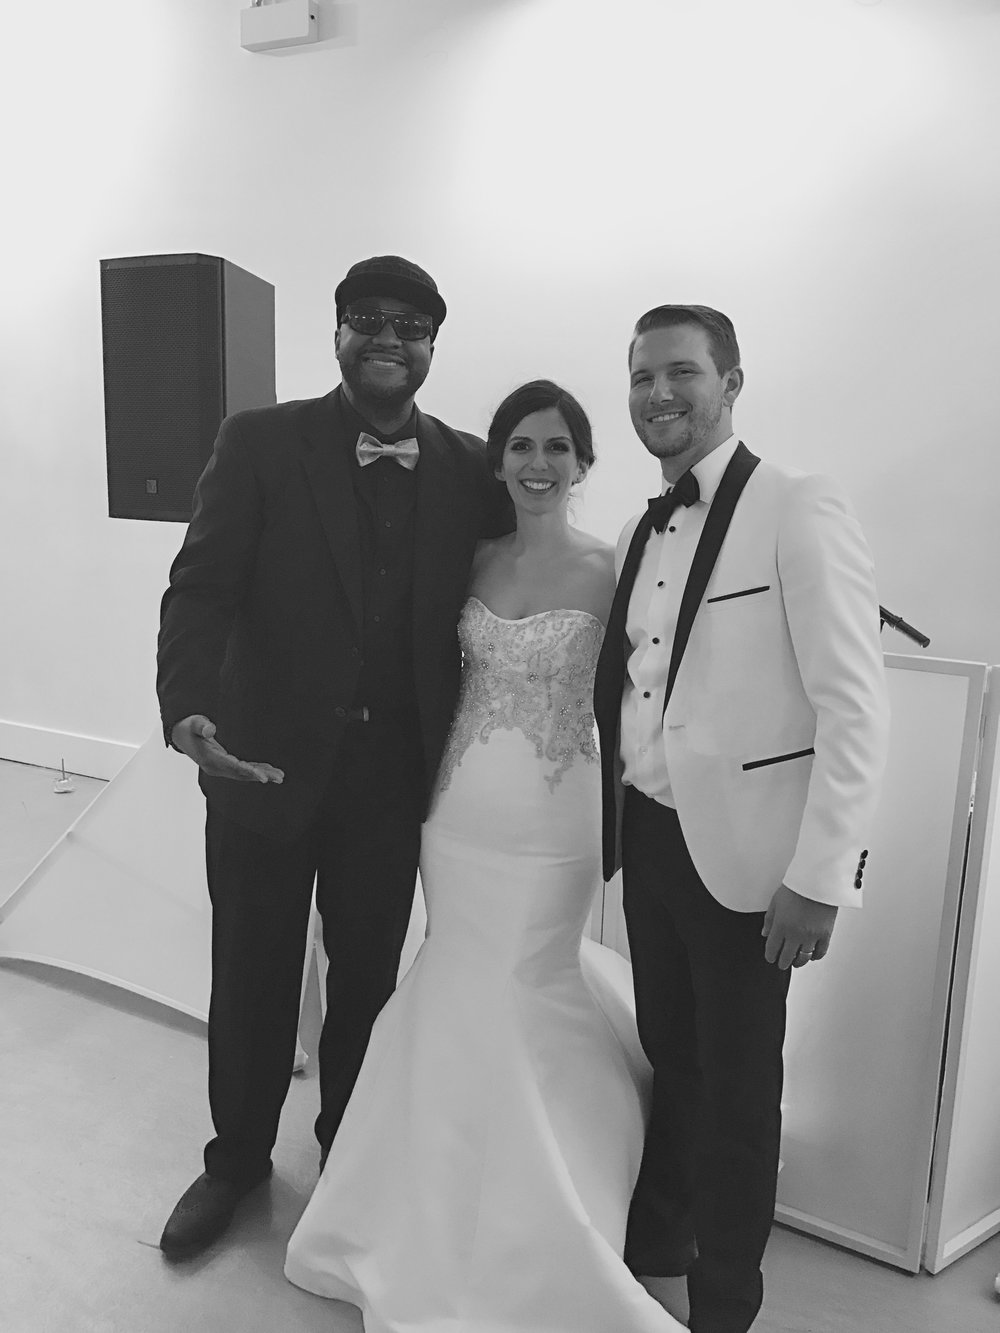 Laura Wedding by dj d jones room 1520 cubs world series.jpg